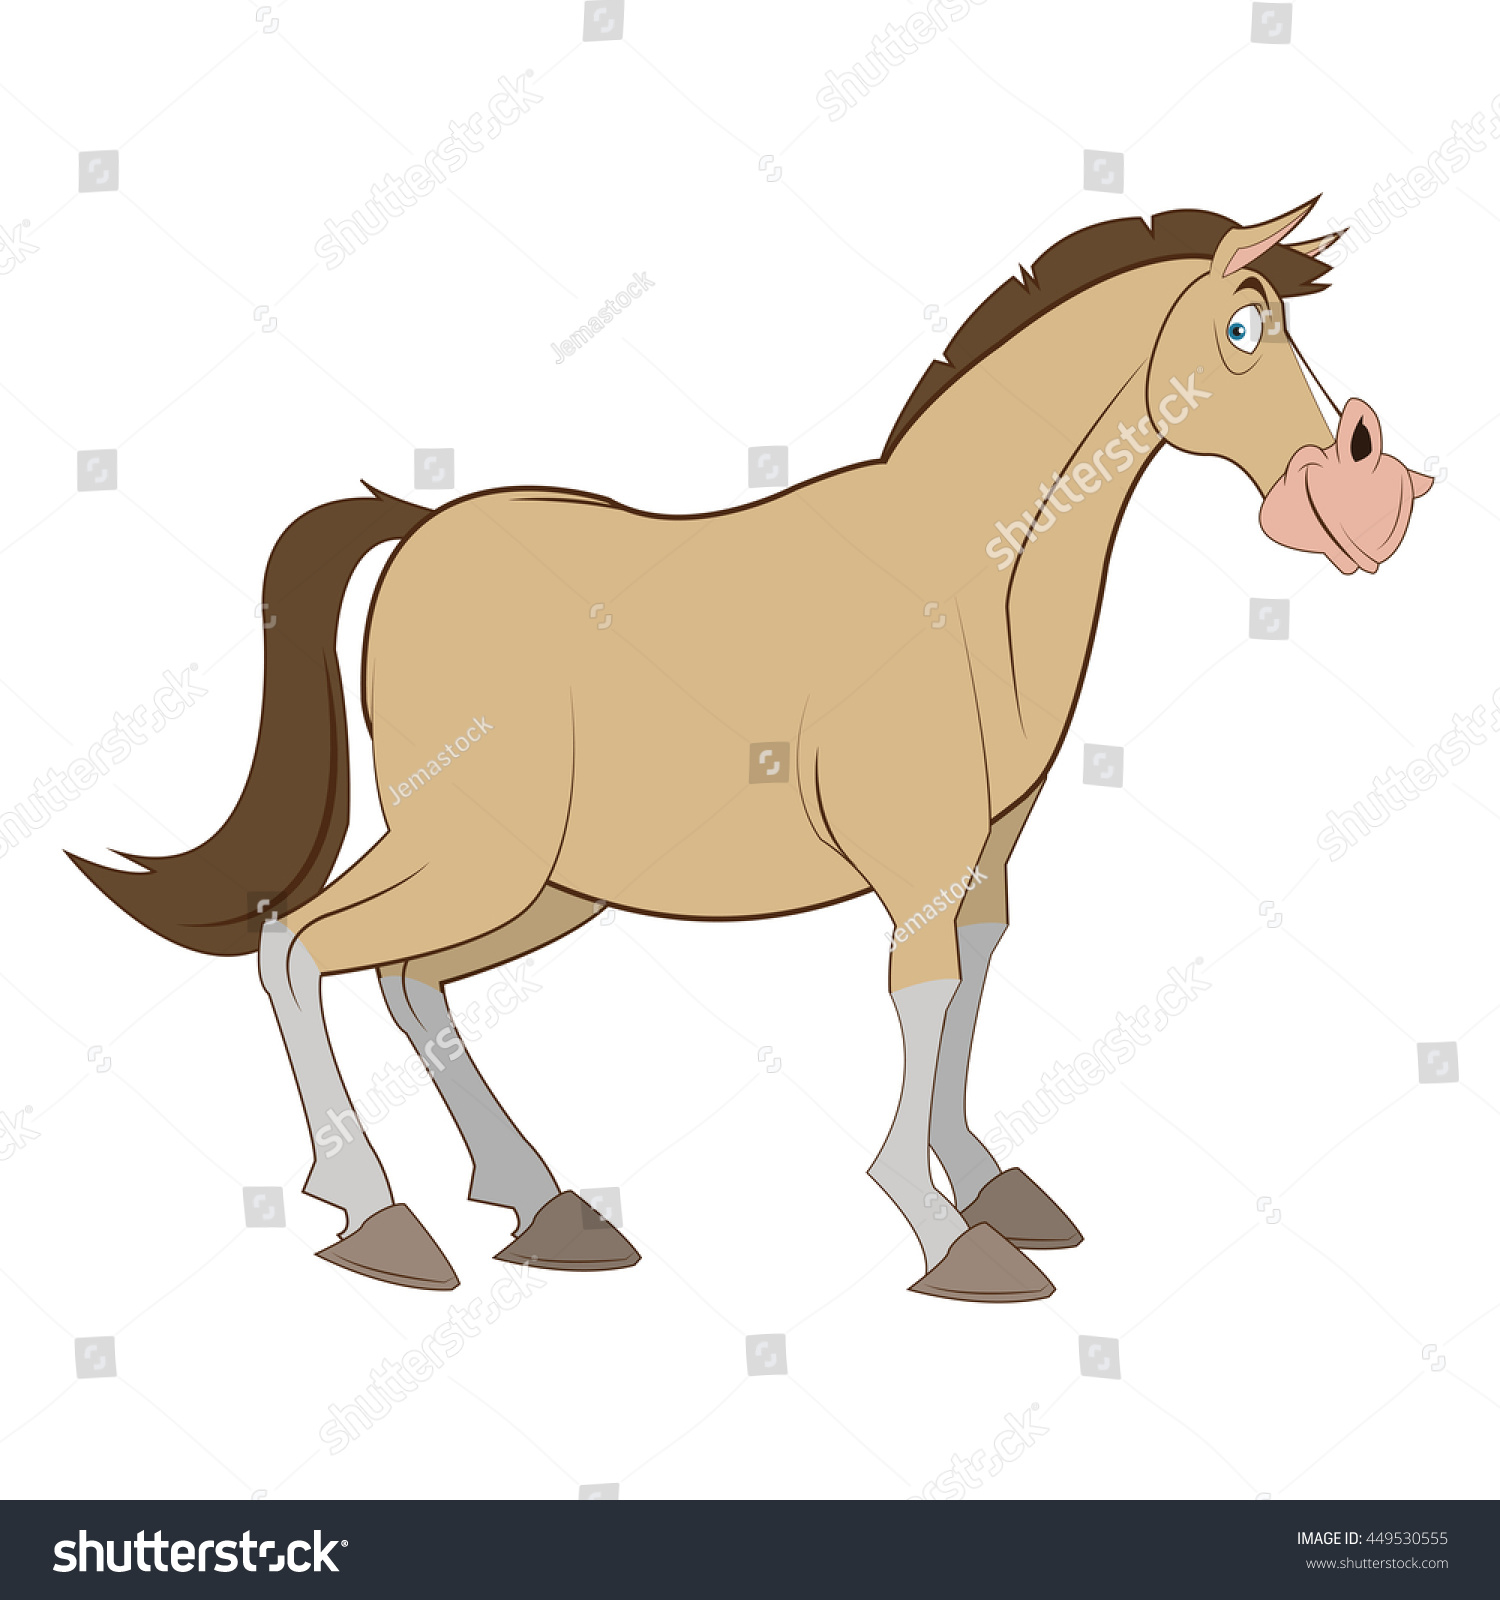 simple horse illustration